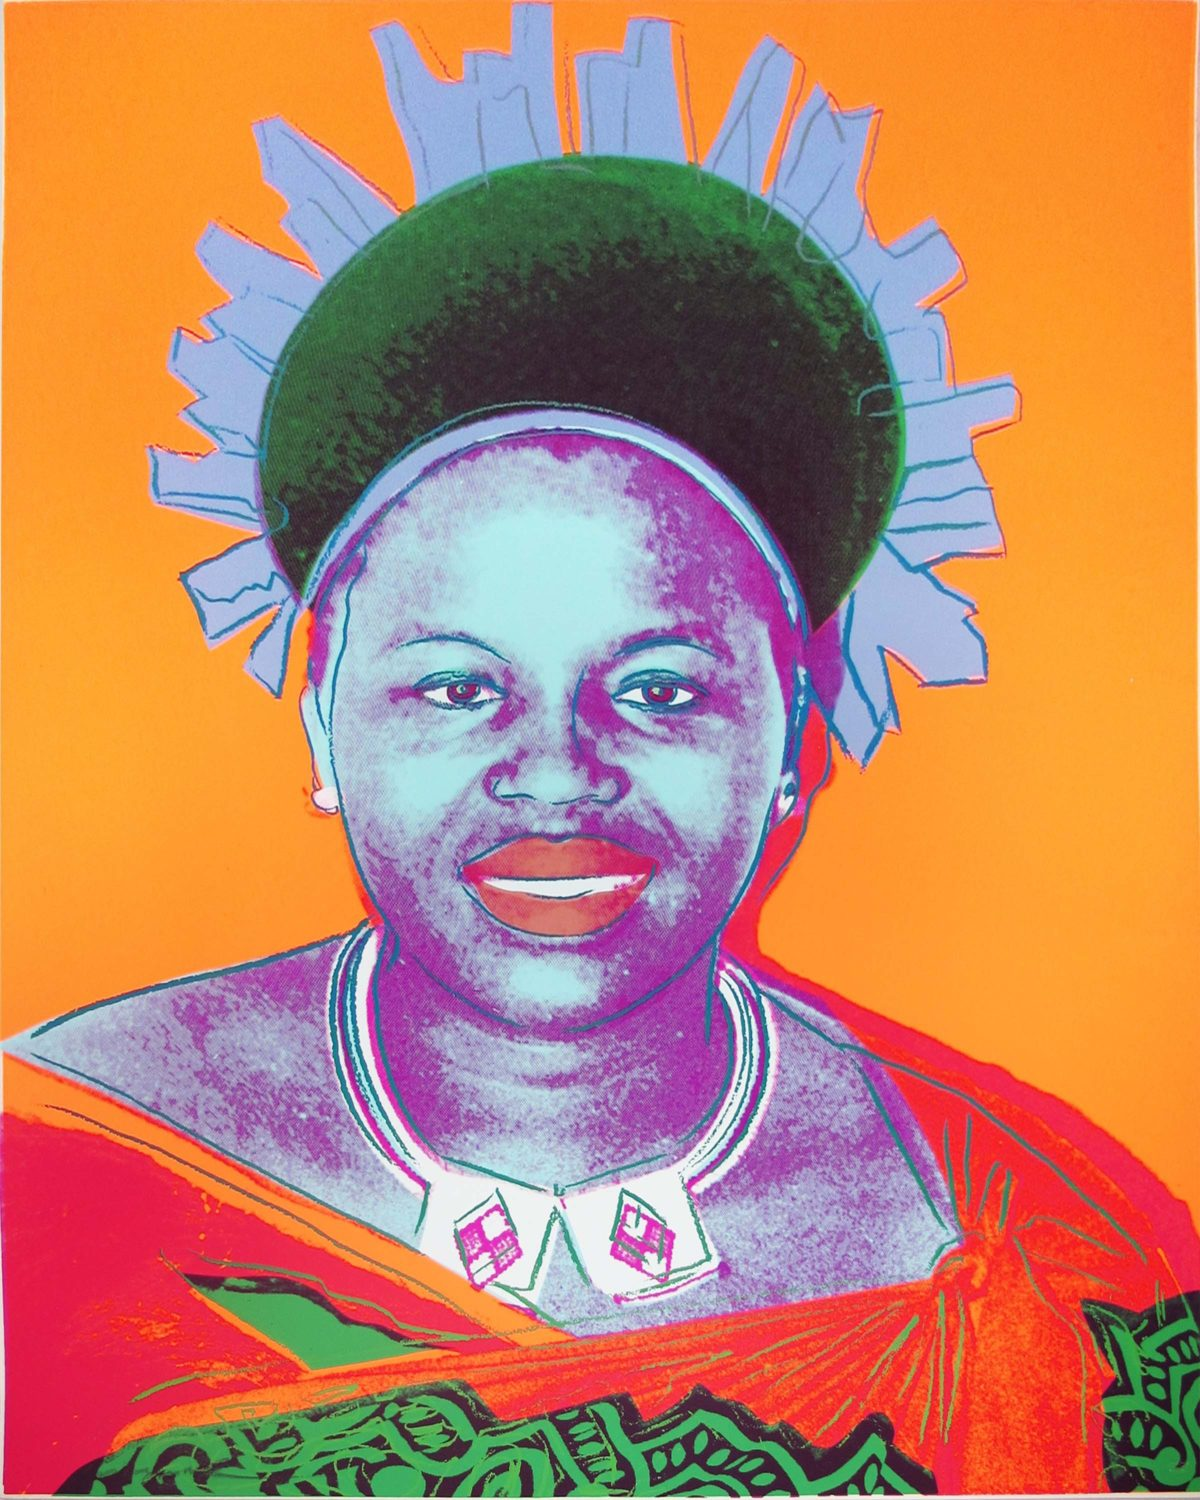 Andy Warhol | Reigning Queens | Queen Ntombi Twala of Swaziland | 1985 | Image of Artists' work.